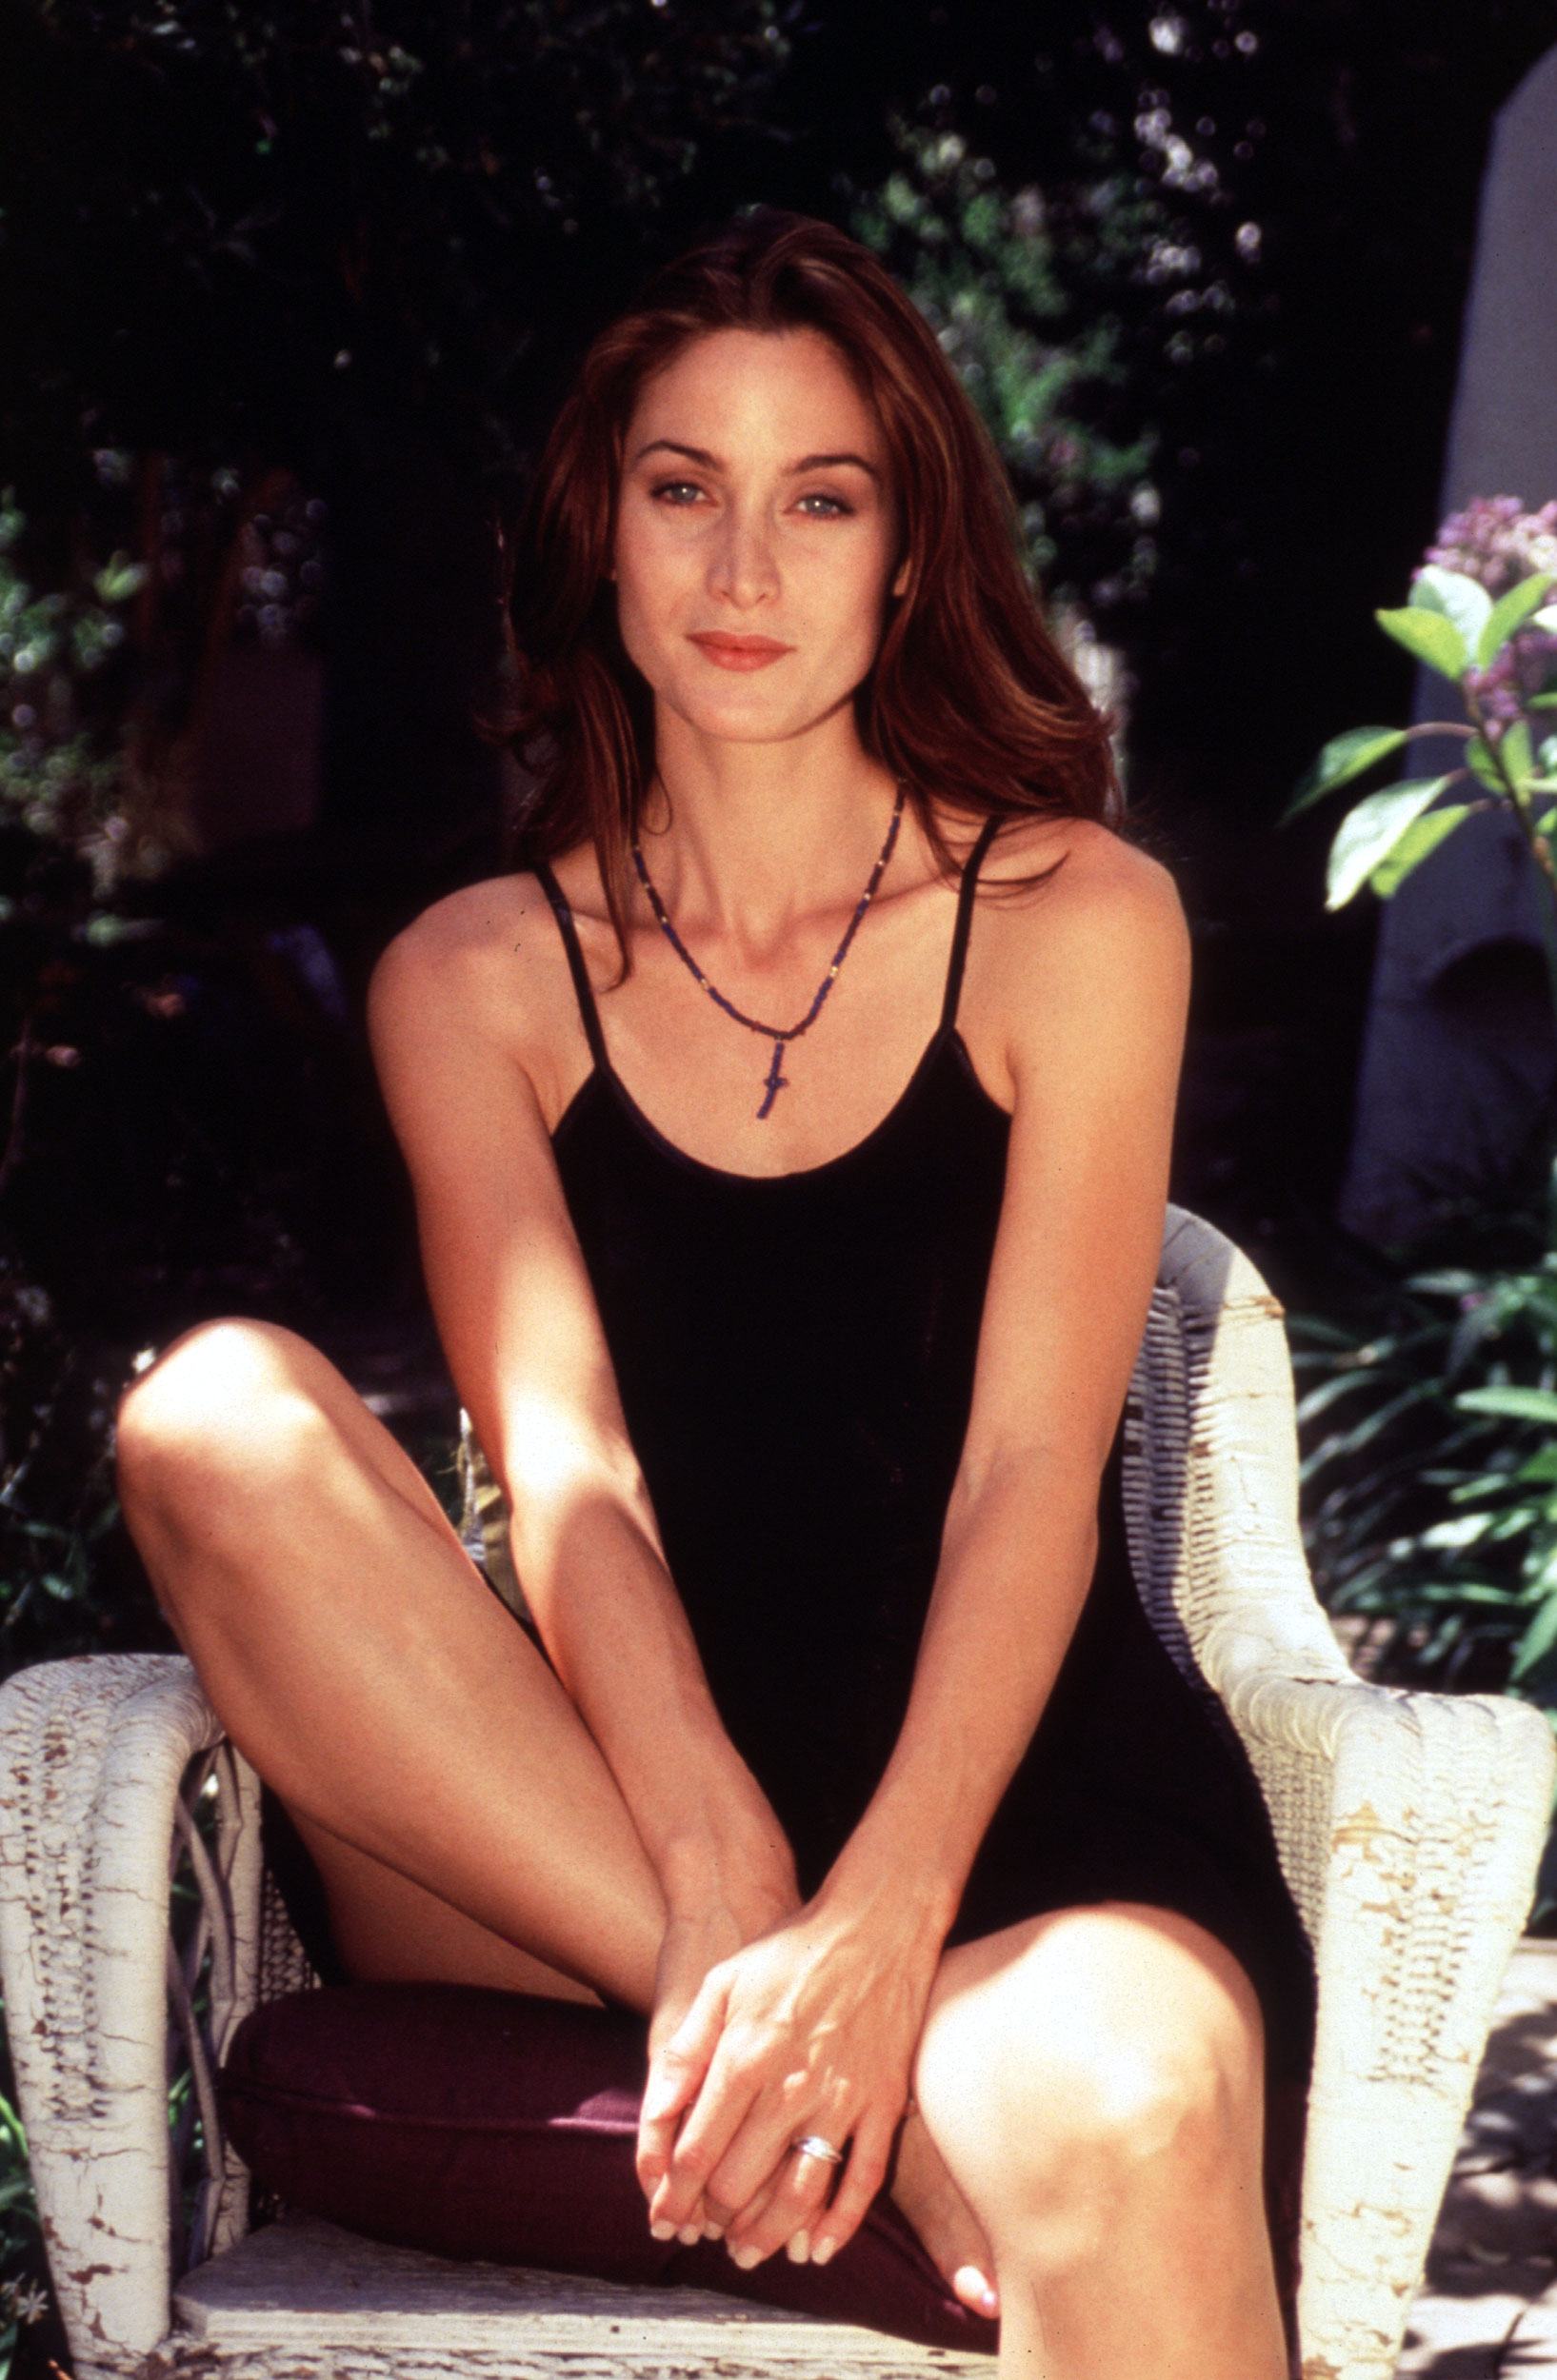 Carrie ann moss nude picture 48